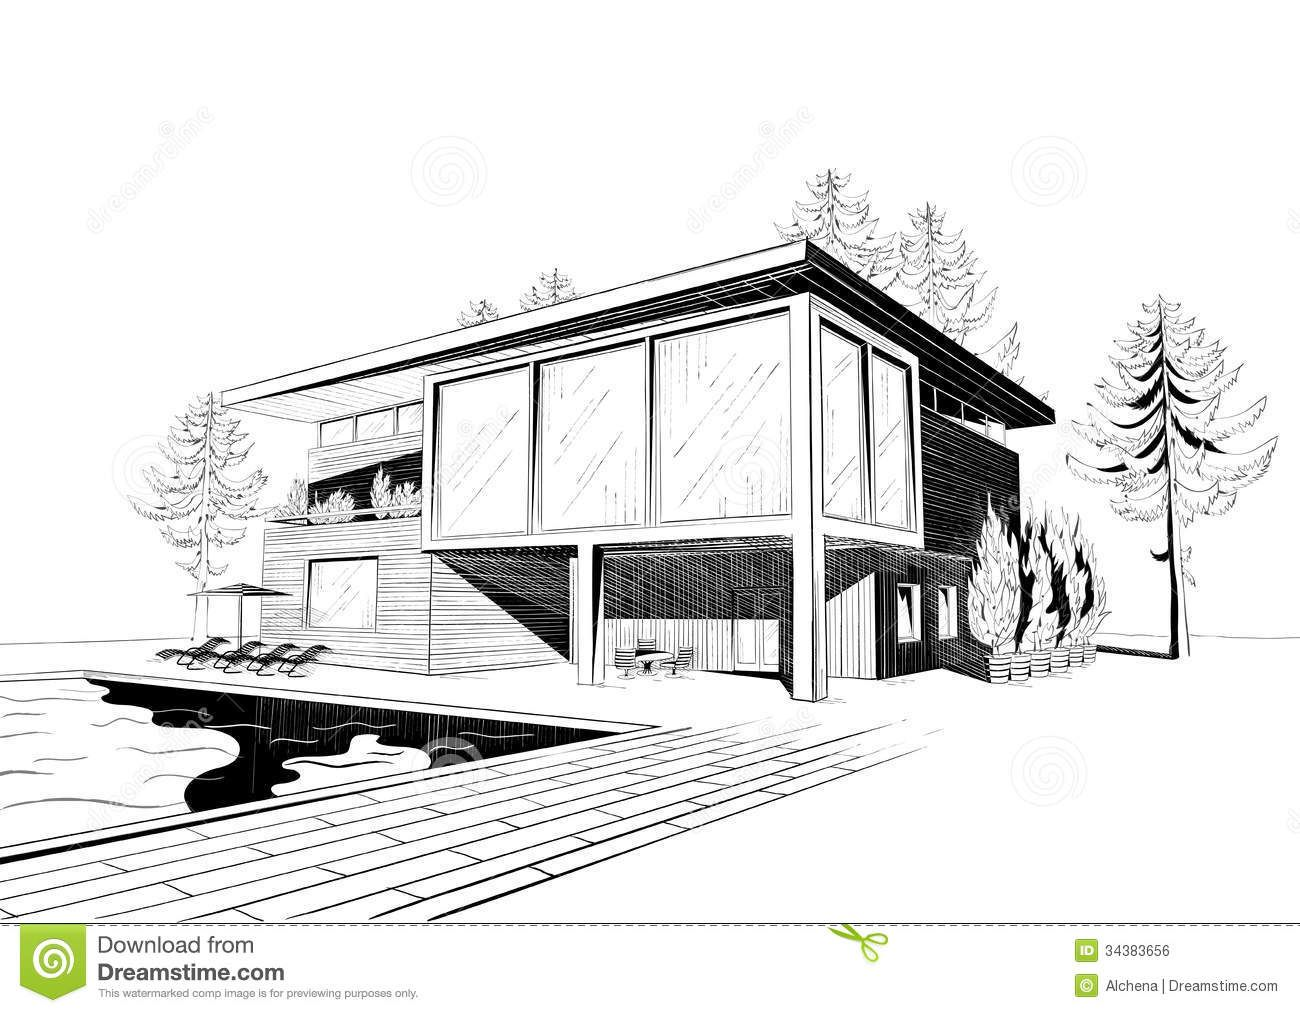 Excellent modern home architecture sketches on home design for Sketch house plans